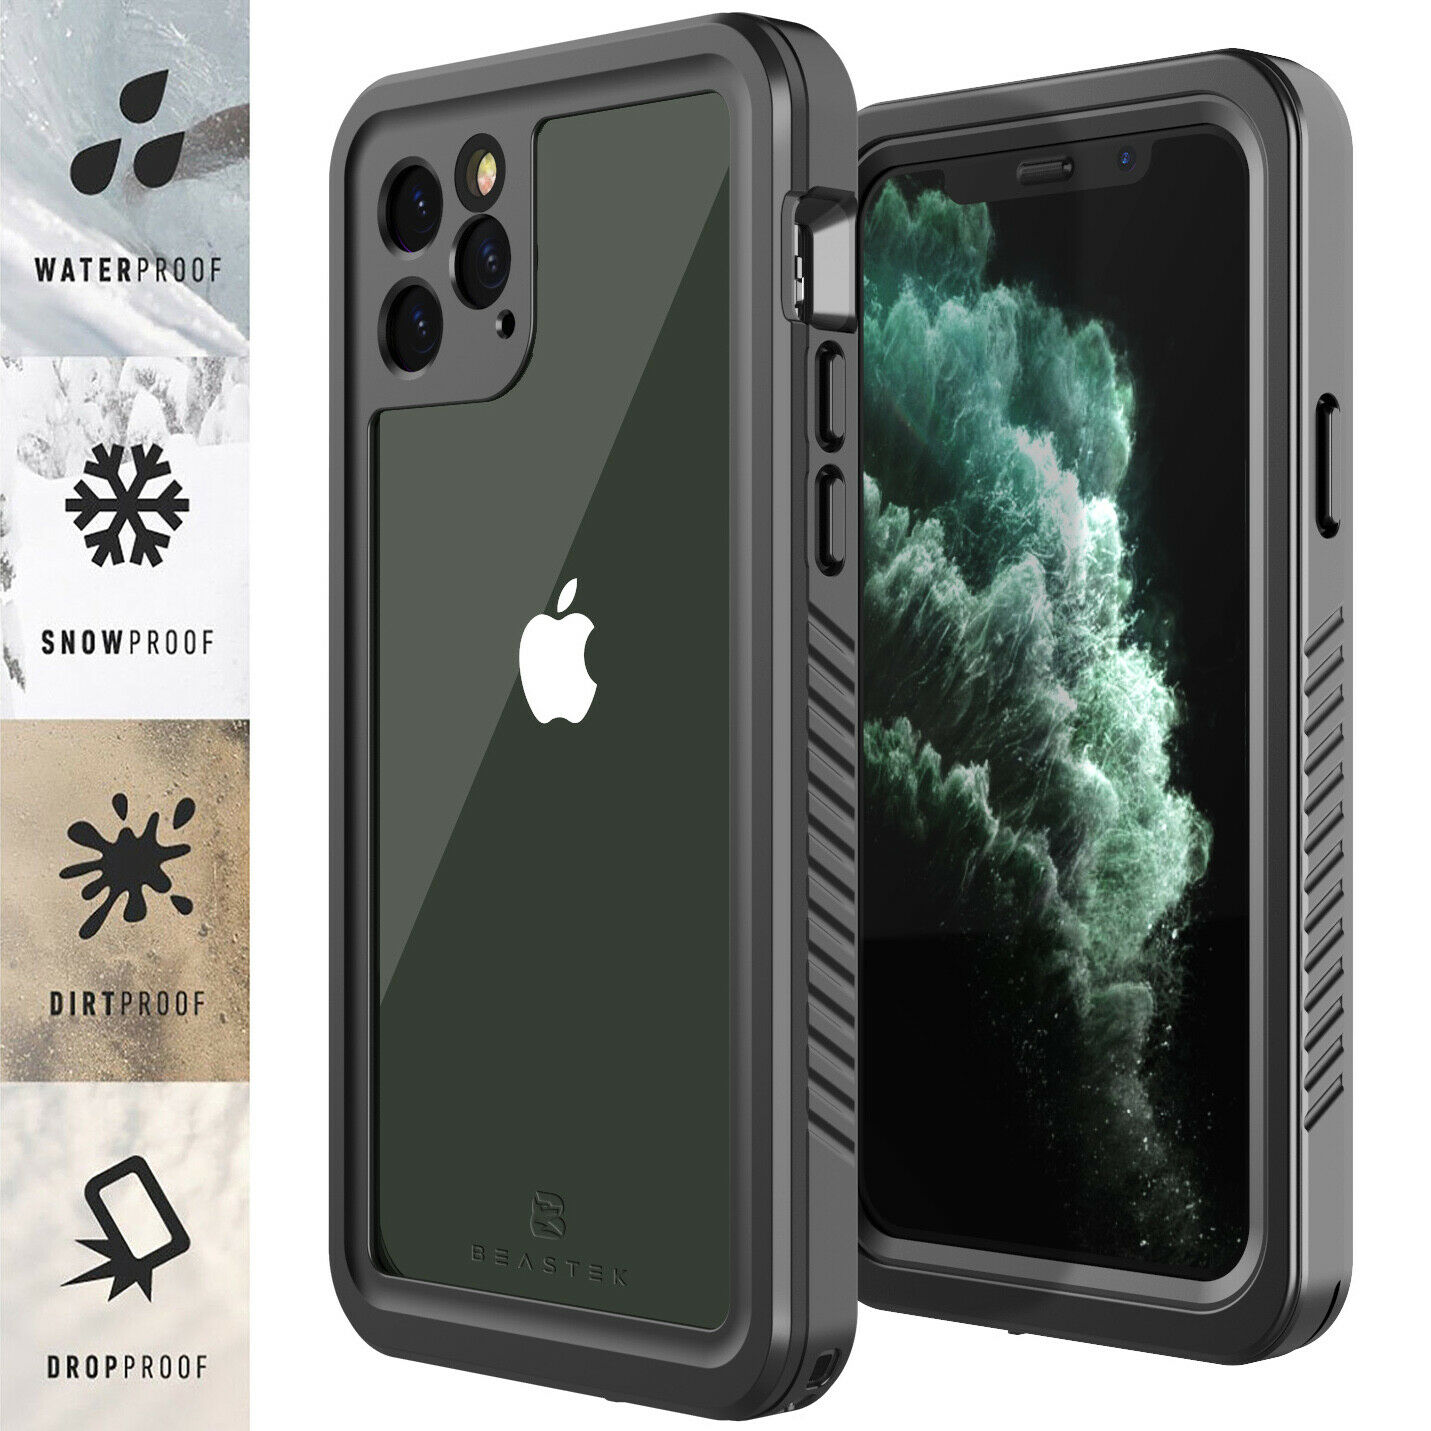 For Apple iPhone 11 / 11 Pro Max Life Waterproof Case Cover